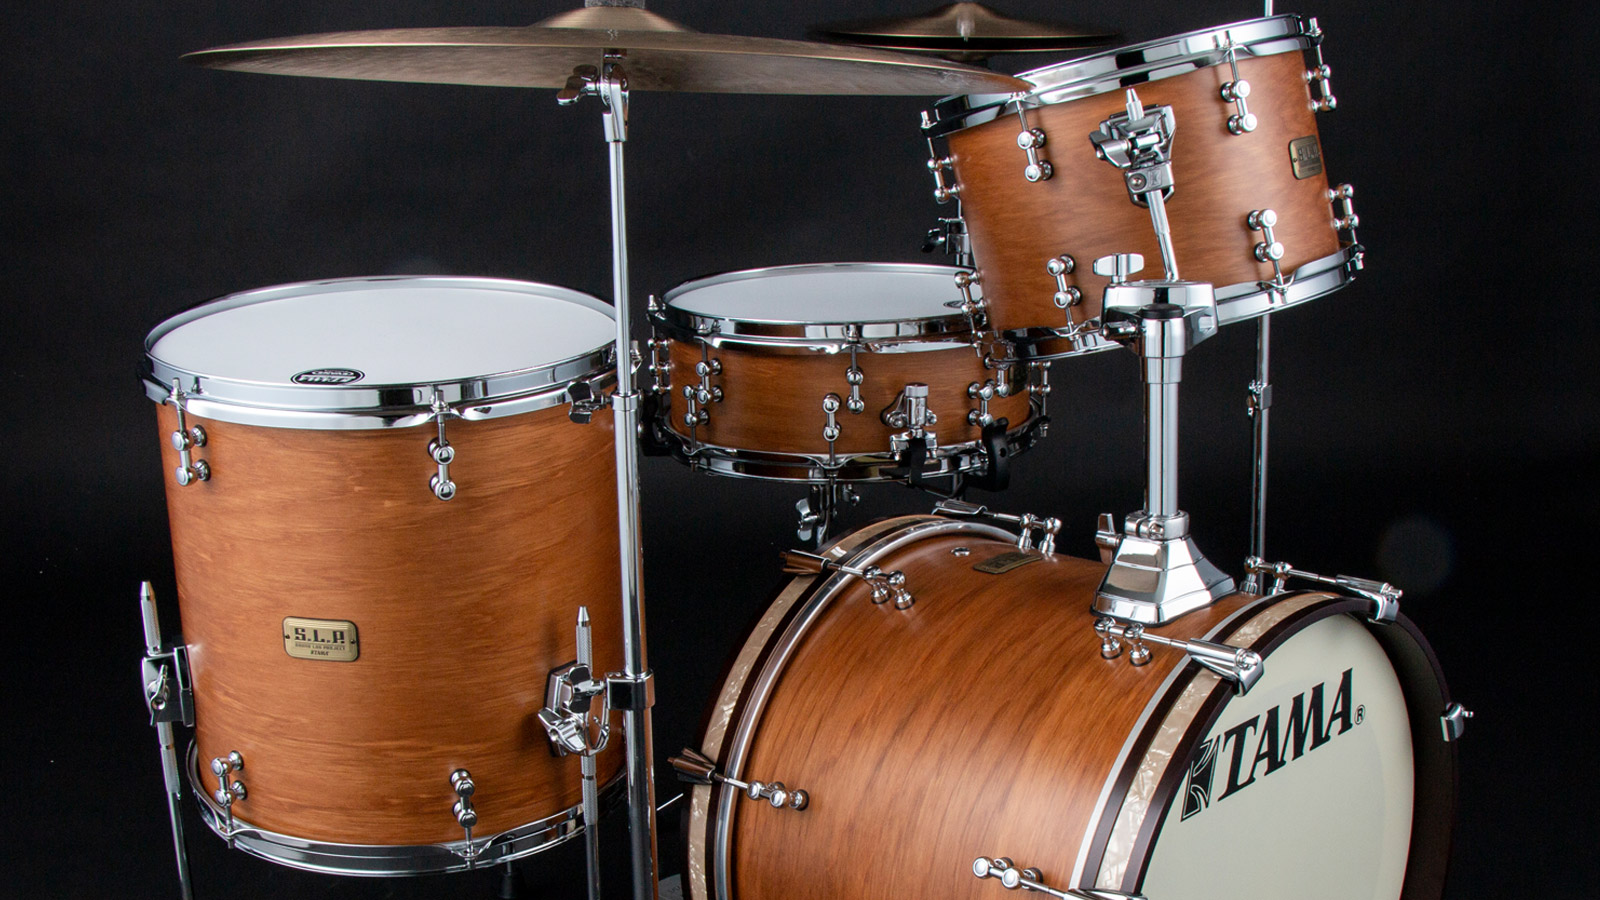 TAMA Drums - Official web site - USA